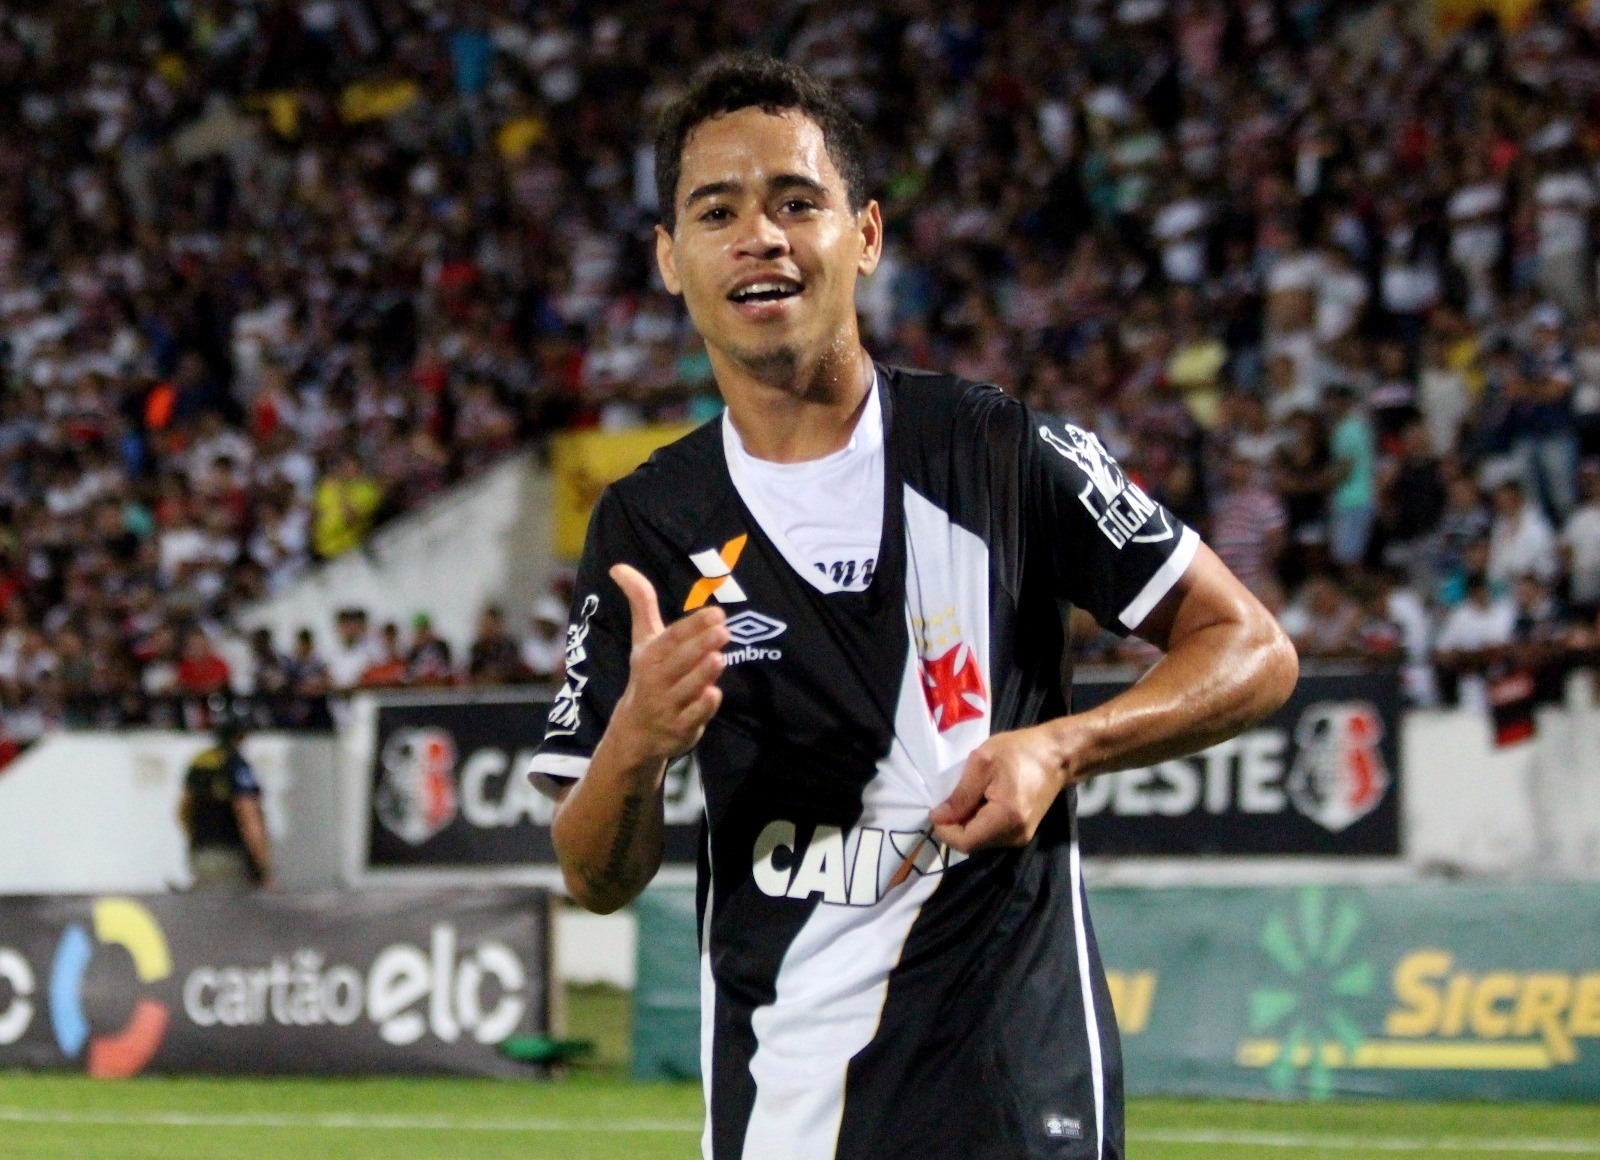 Yago Pikachu comemora gol do Vasco diante do Santa Cruz